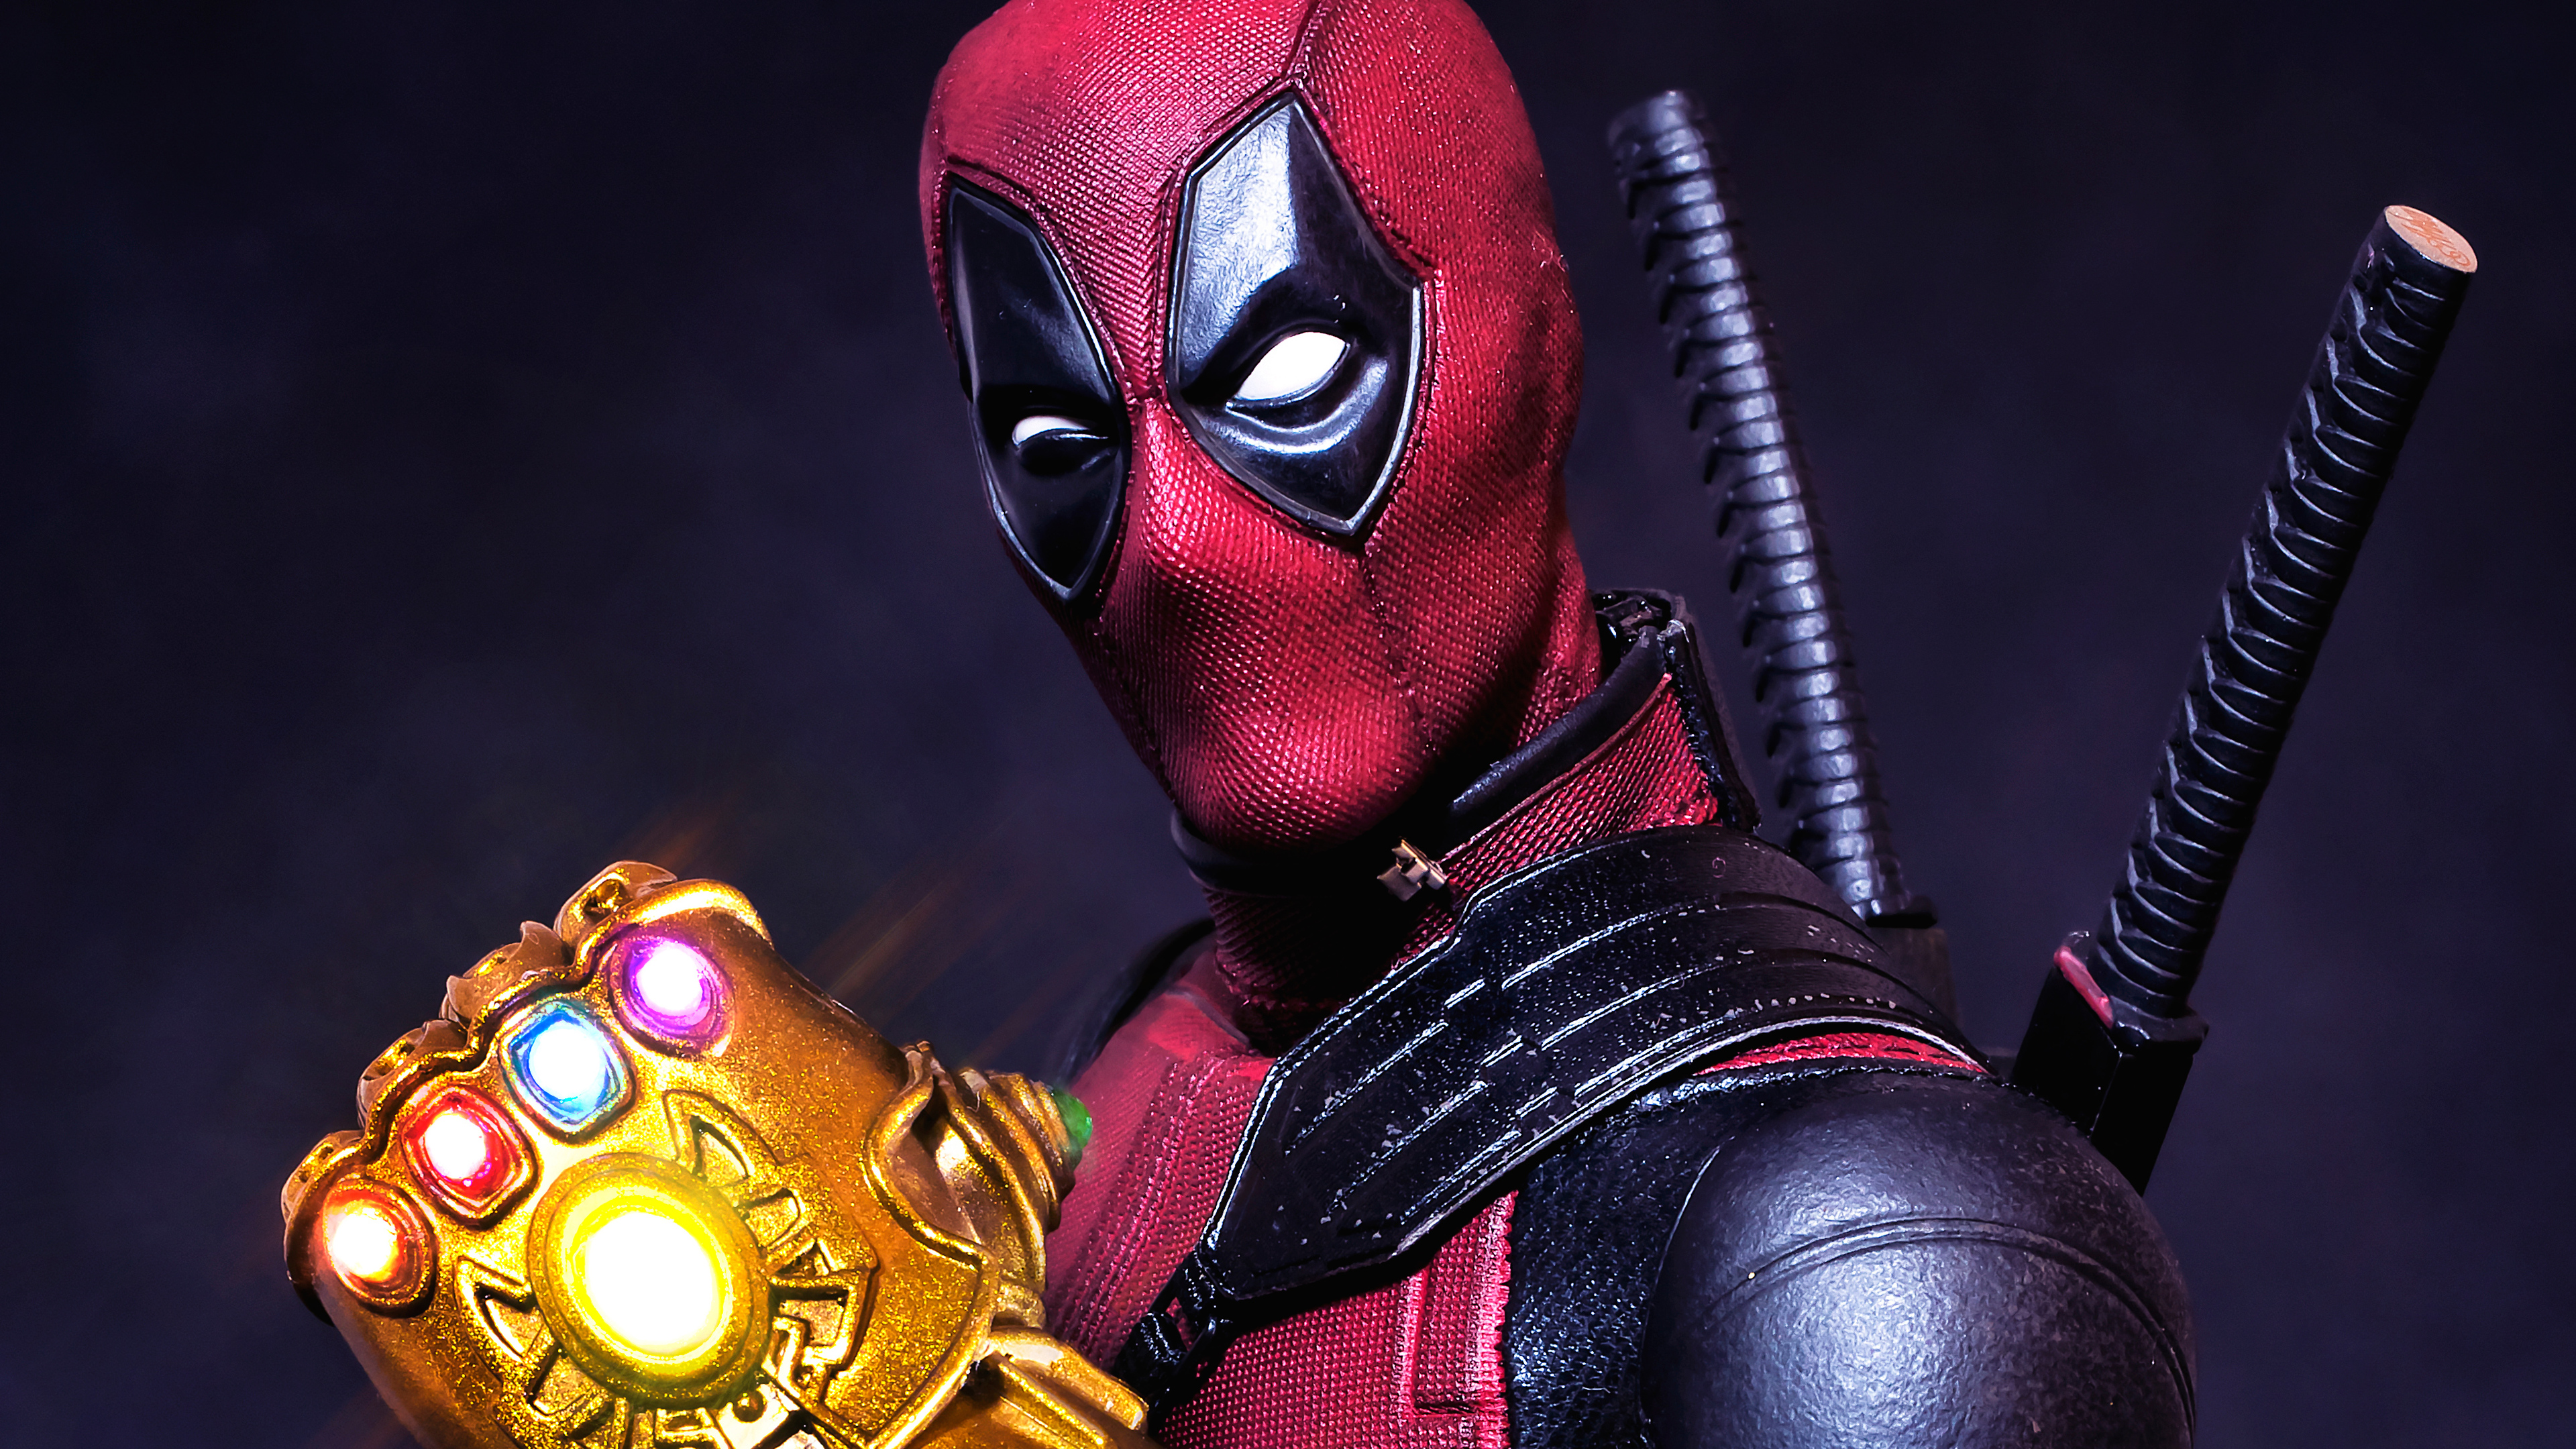 what if deadpool had the gauntlet 4k 1553071894 - What If Deadpool Had The Gauntlet 4k - superheroes wallpapers, hd-wallpapers, flickr wallpapers, deadpool wallpapers, 4k-wallpapers